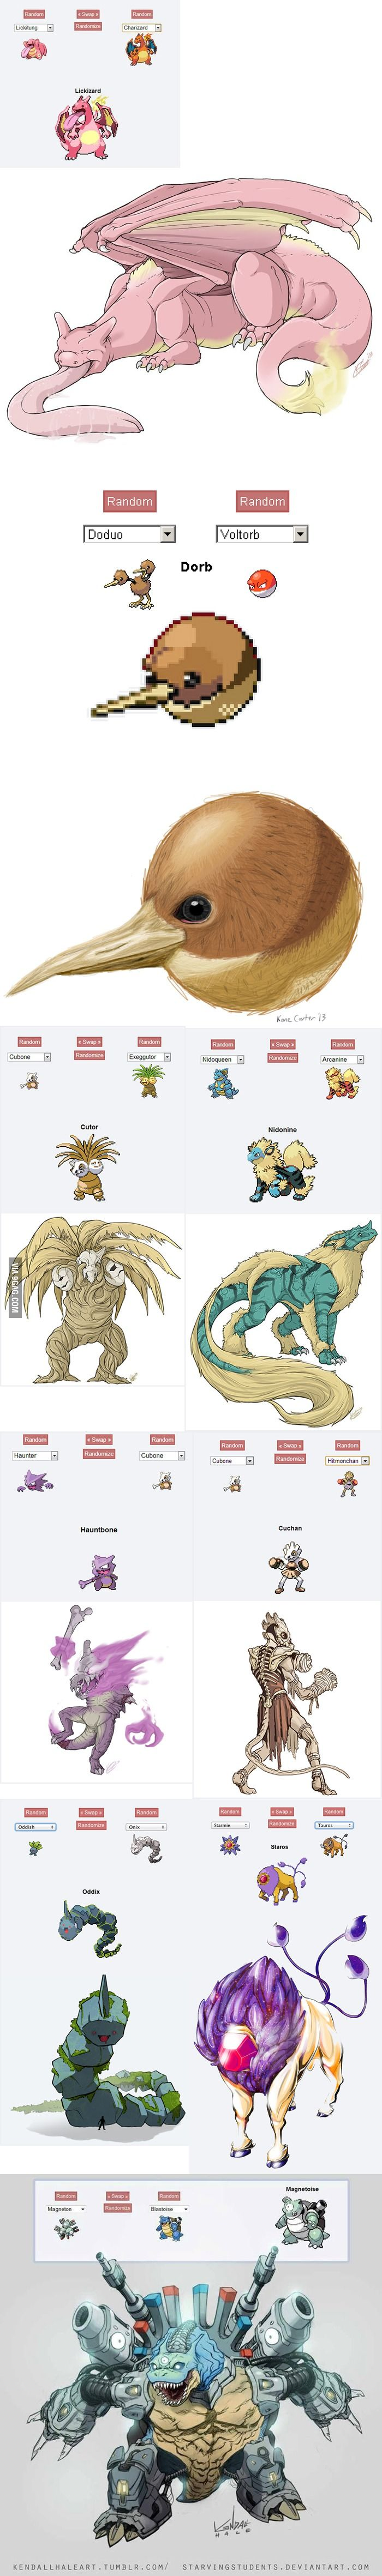 Pokemon Fusion Art - I love the Nidonine. This is frighteningly awesome!